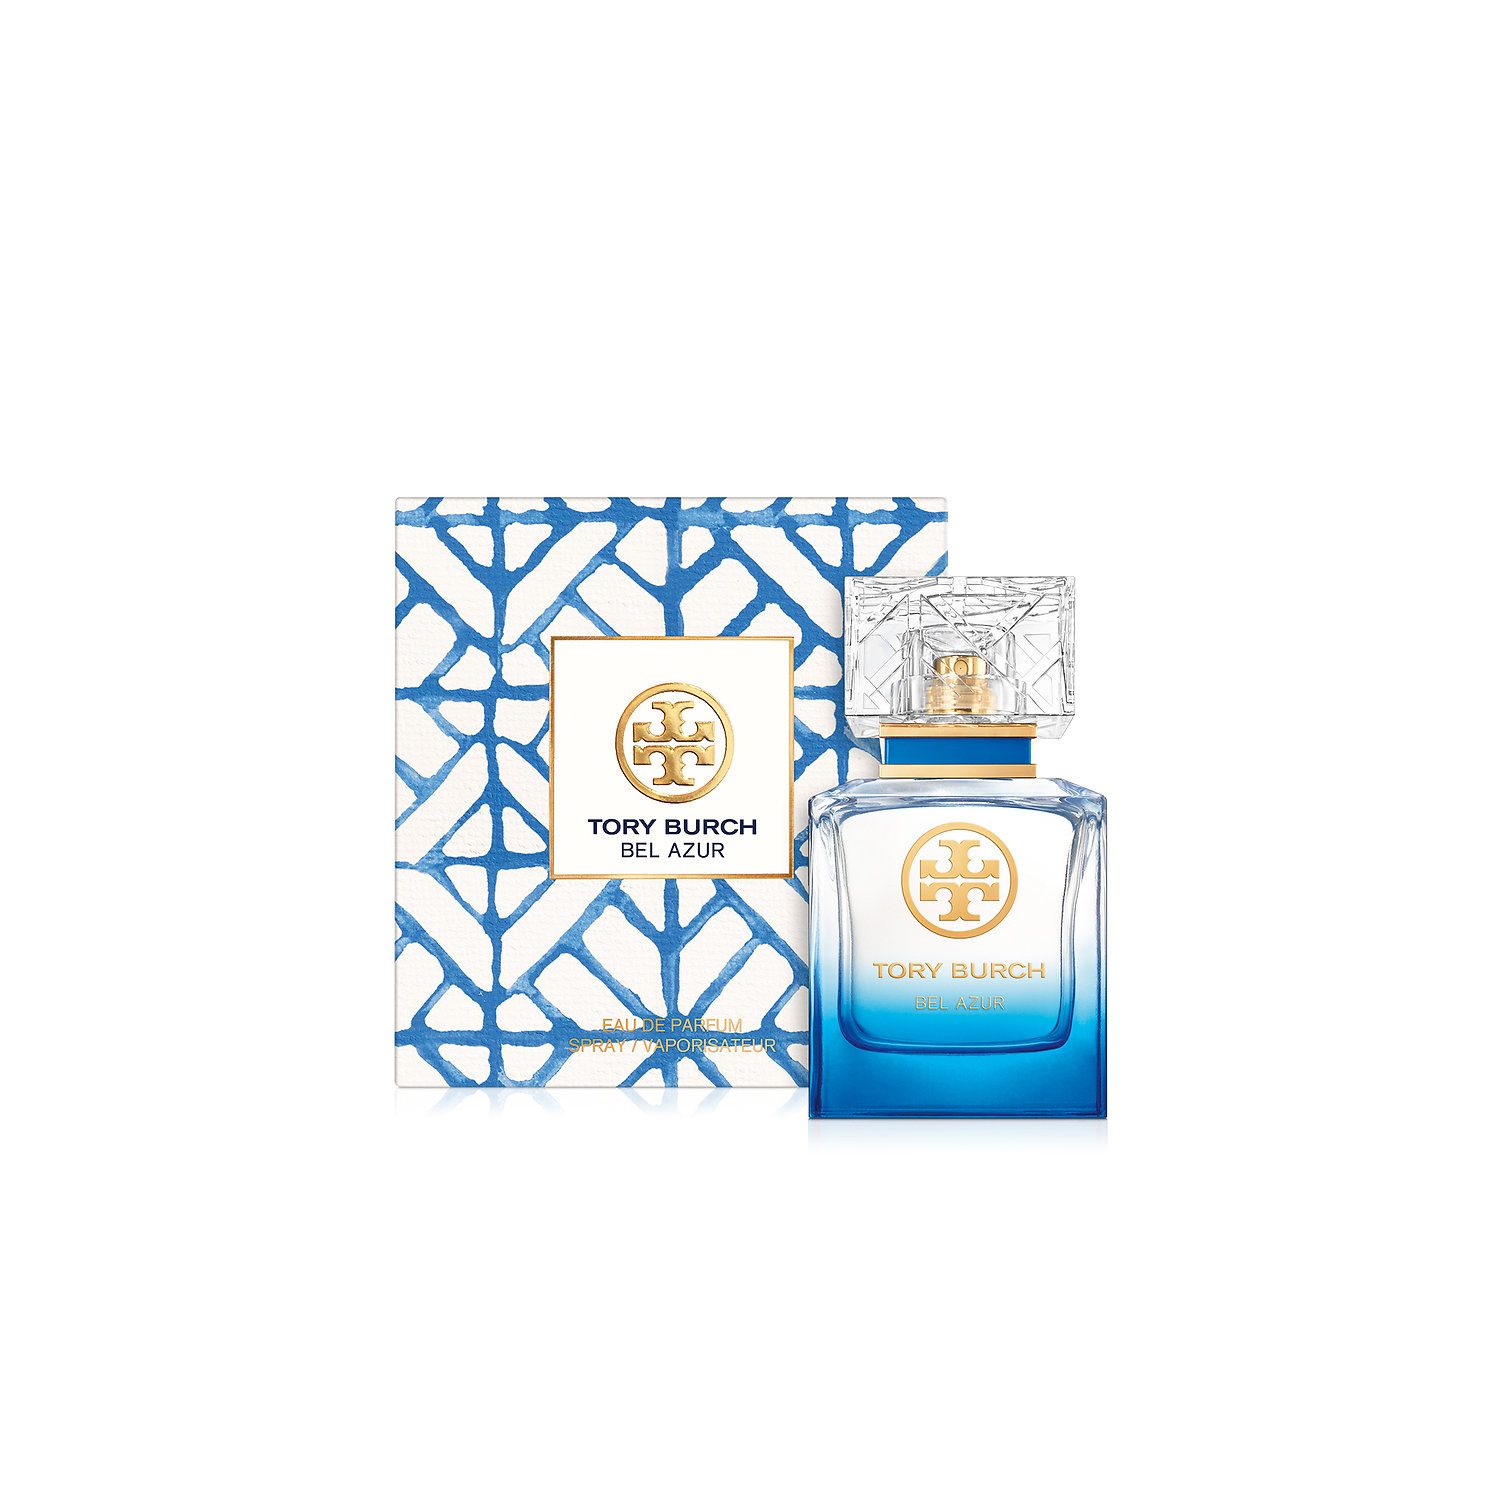 5f33c79511 Bel Azur Tory Burch perfume - a new fragrance for women 2017